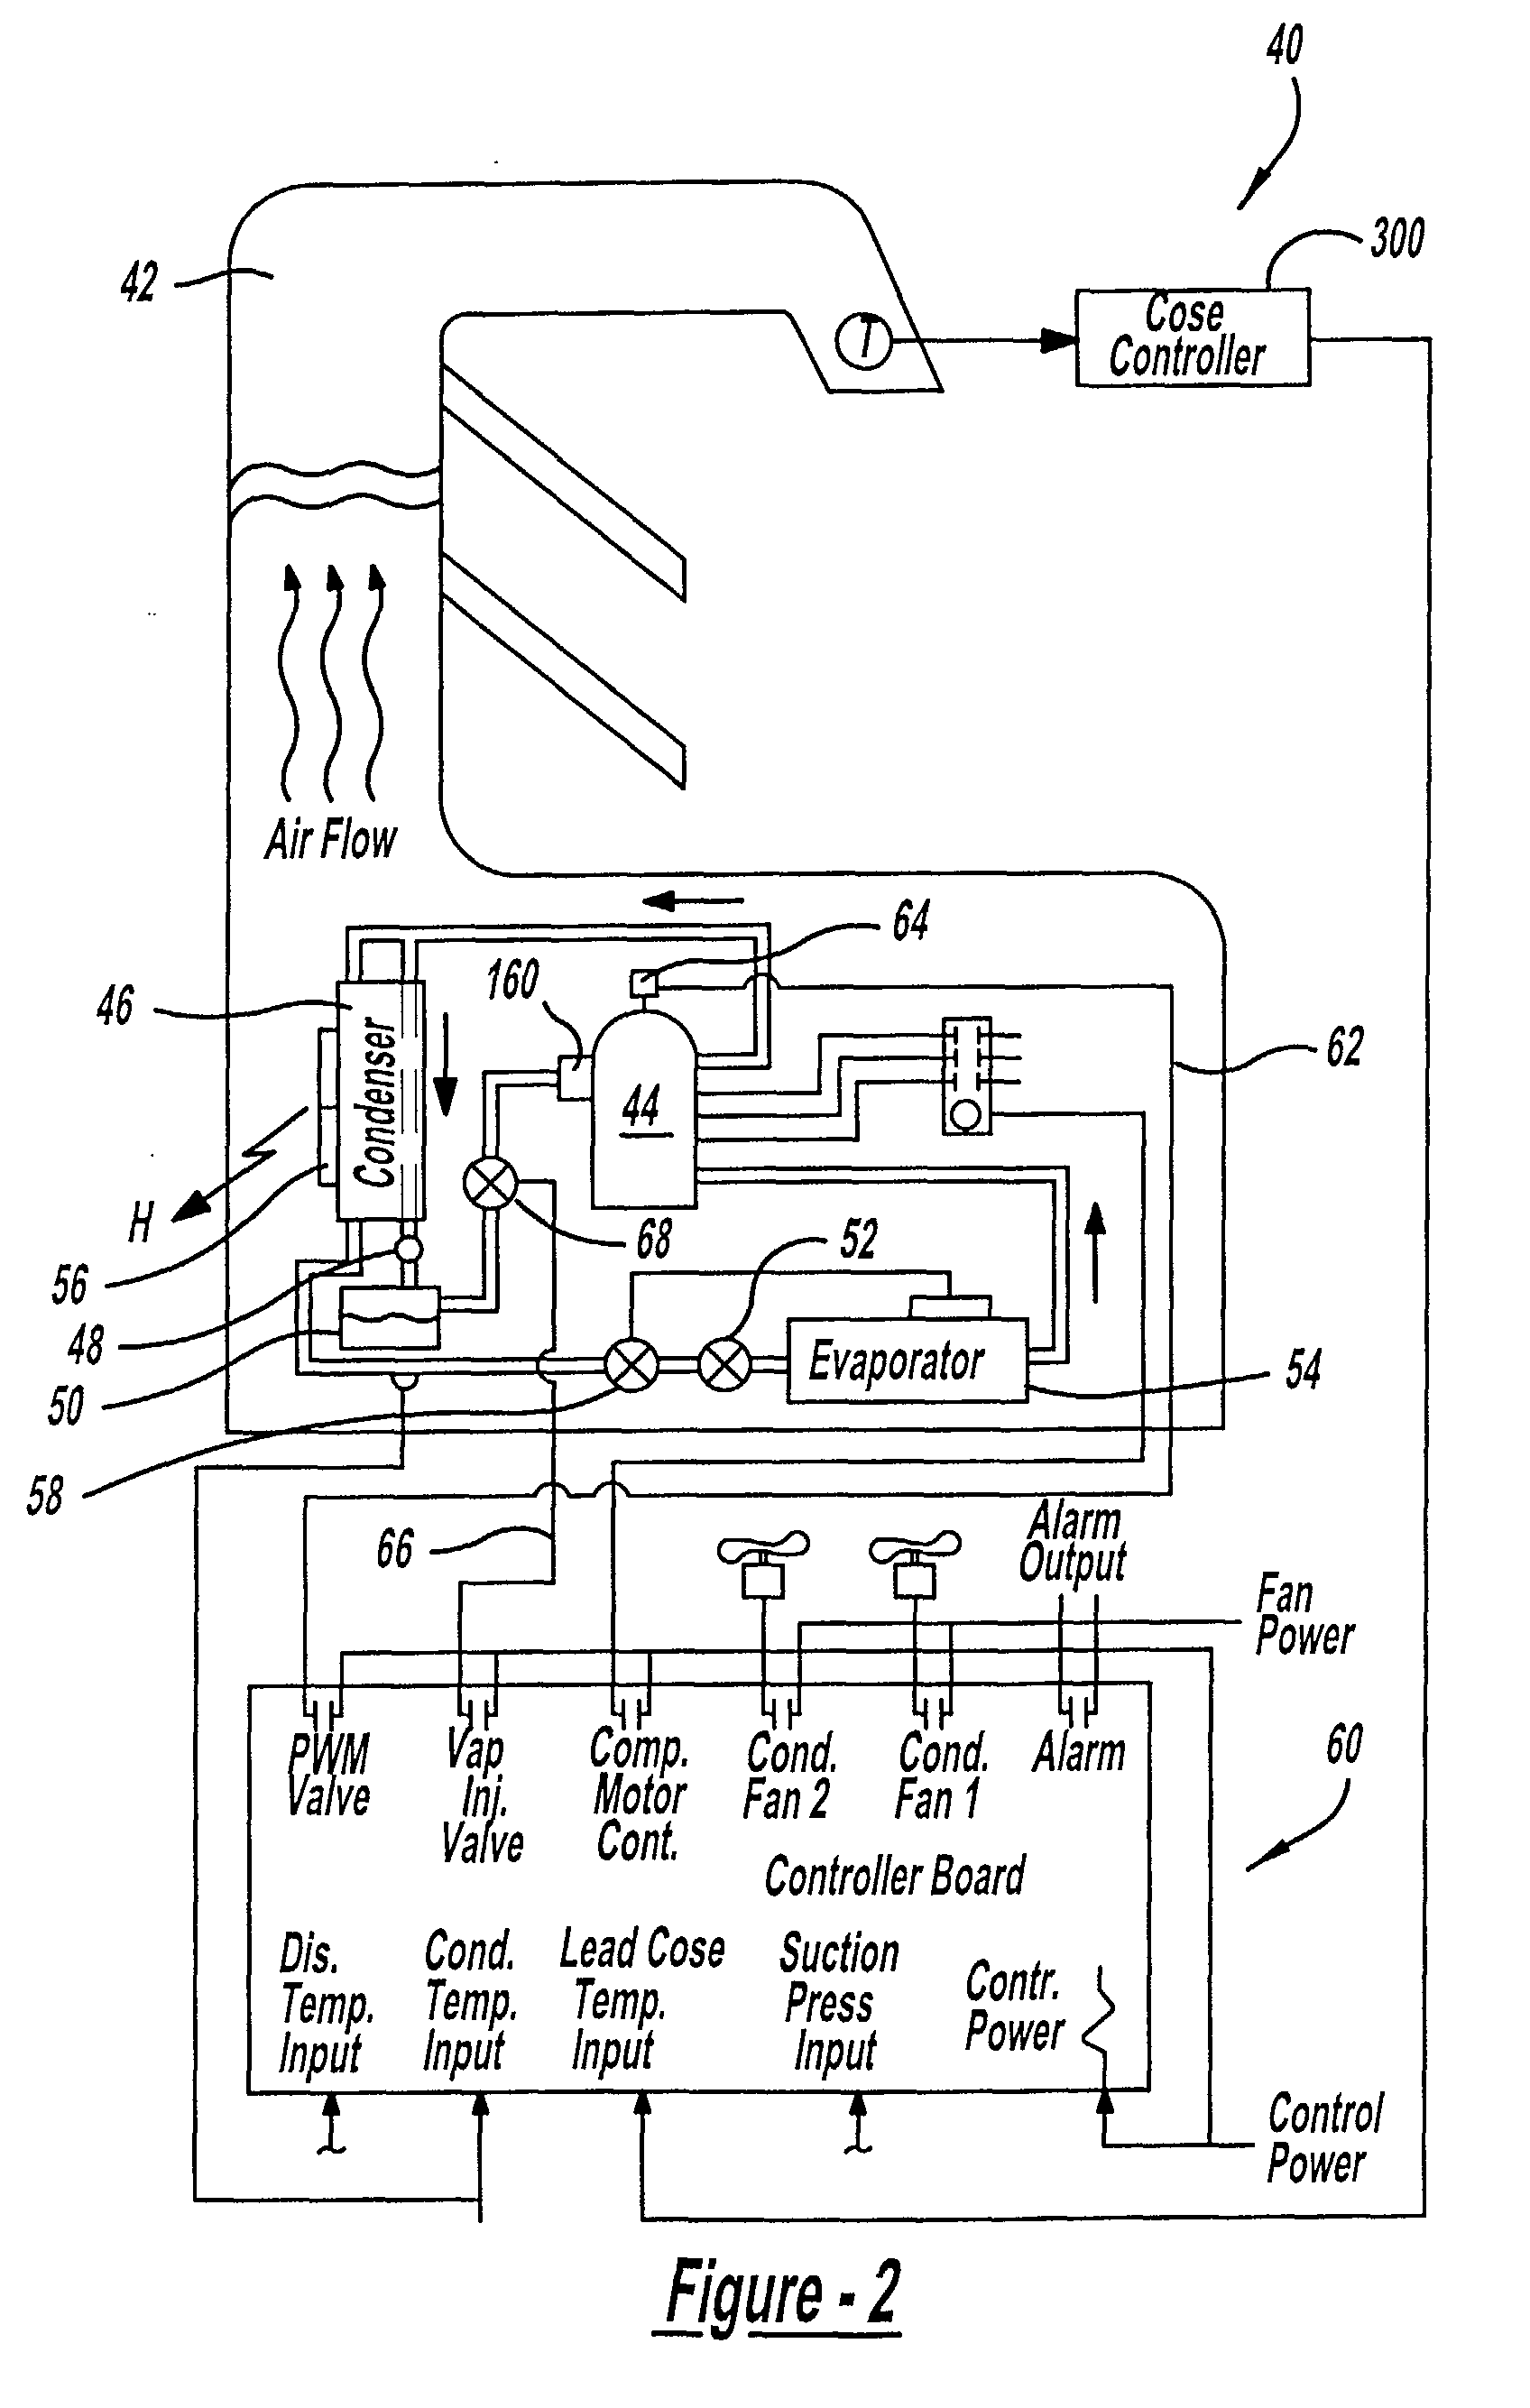 Sanborn Air Compressor Wiring Diagram